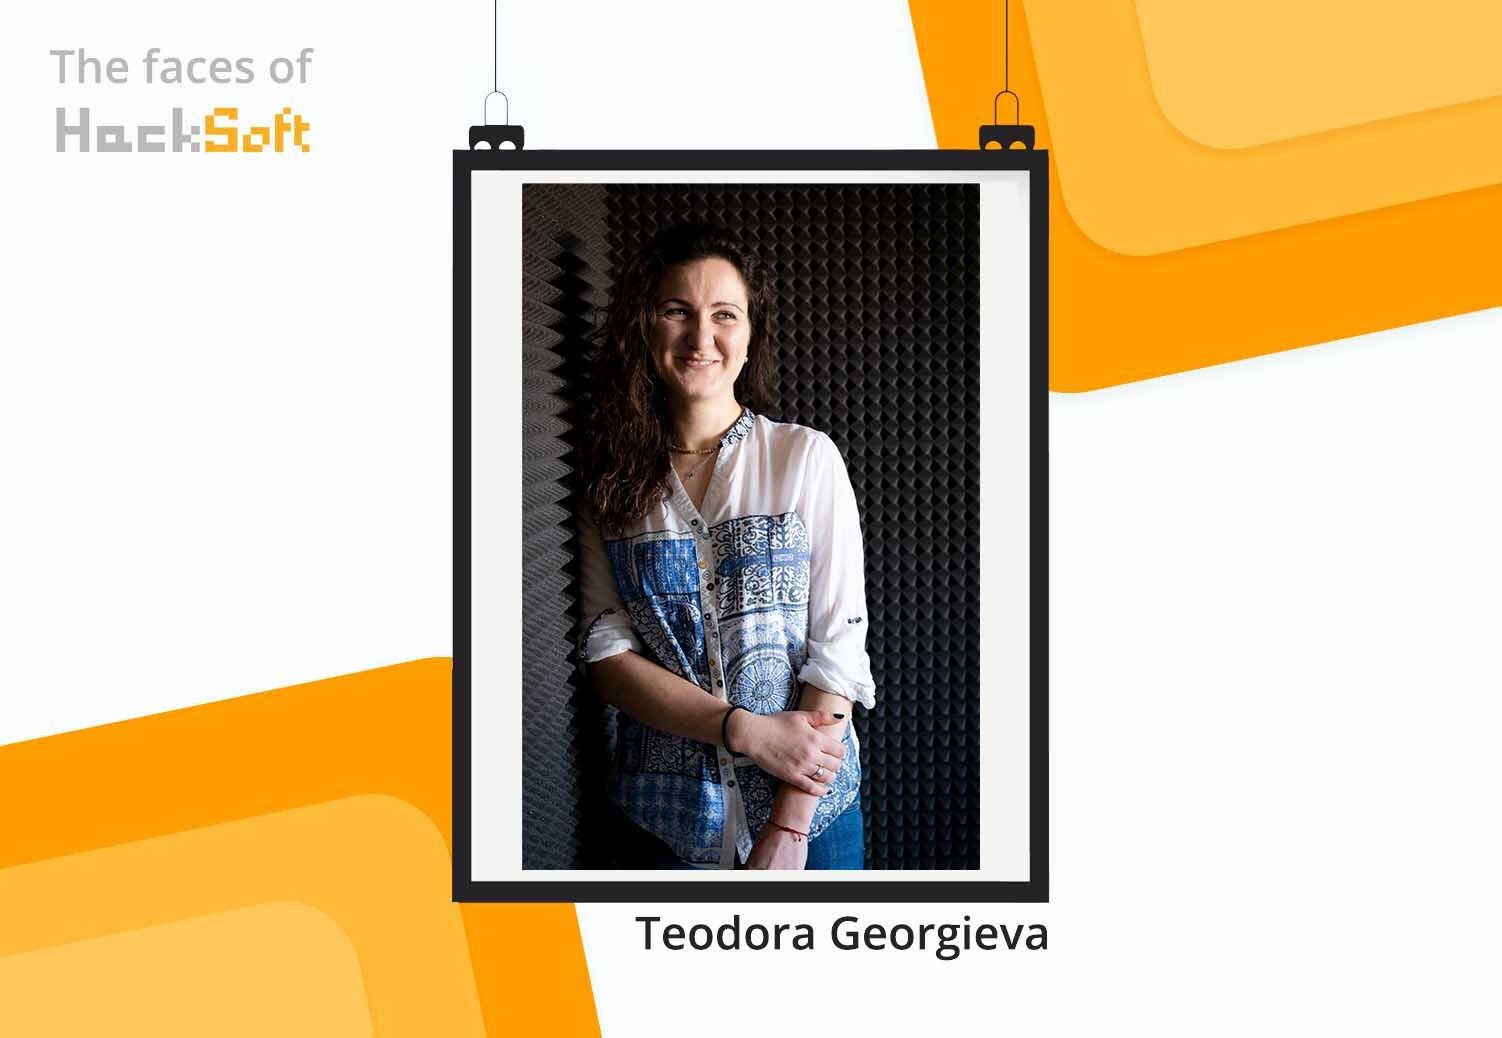 Behind any successful company, stands a motivated team. We would love to introduce you to Teodora Georgieva.